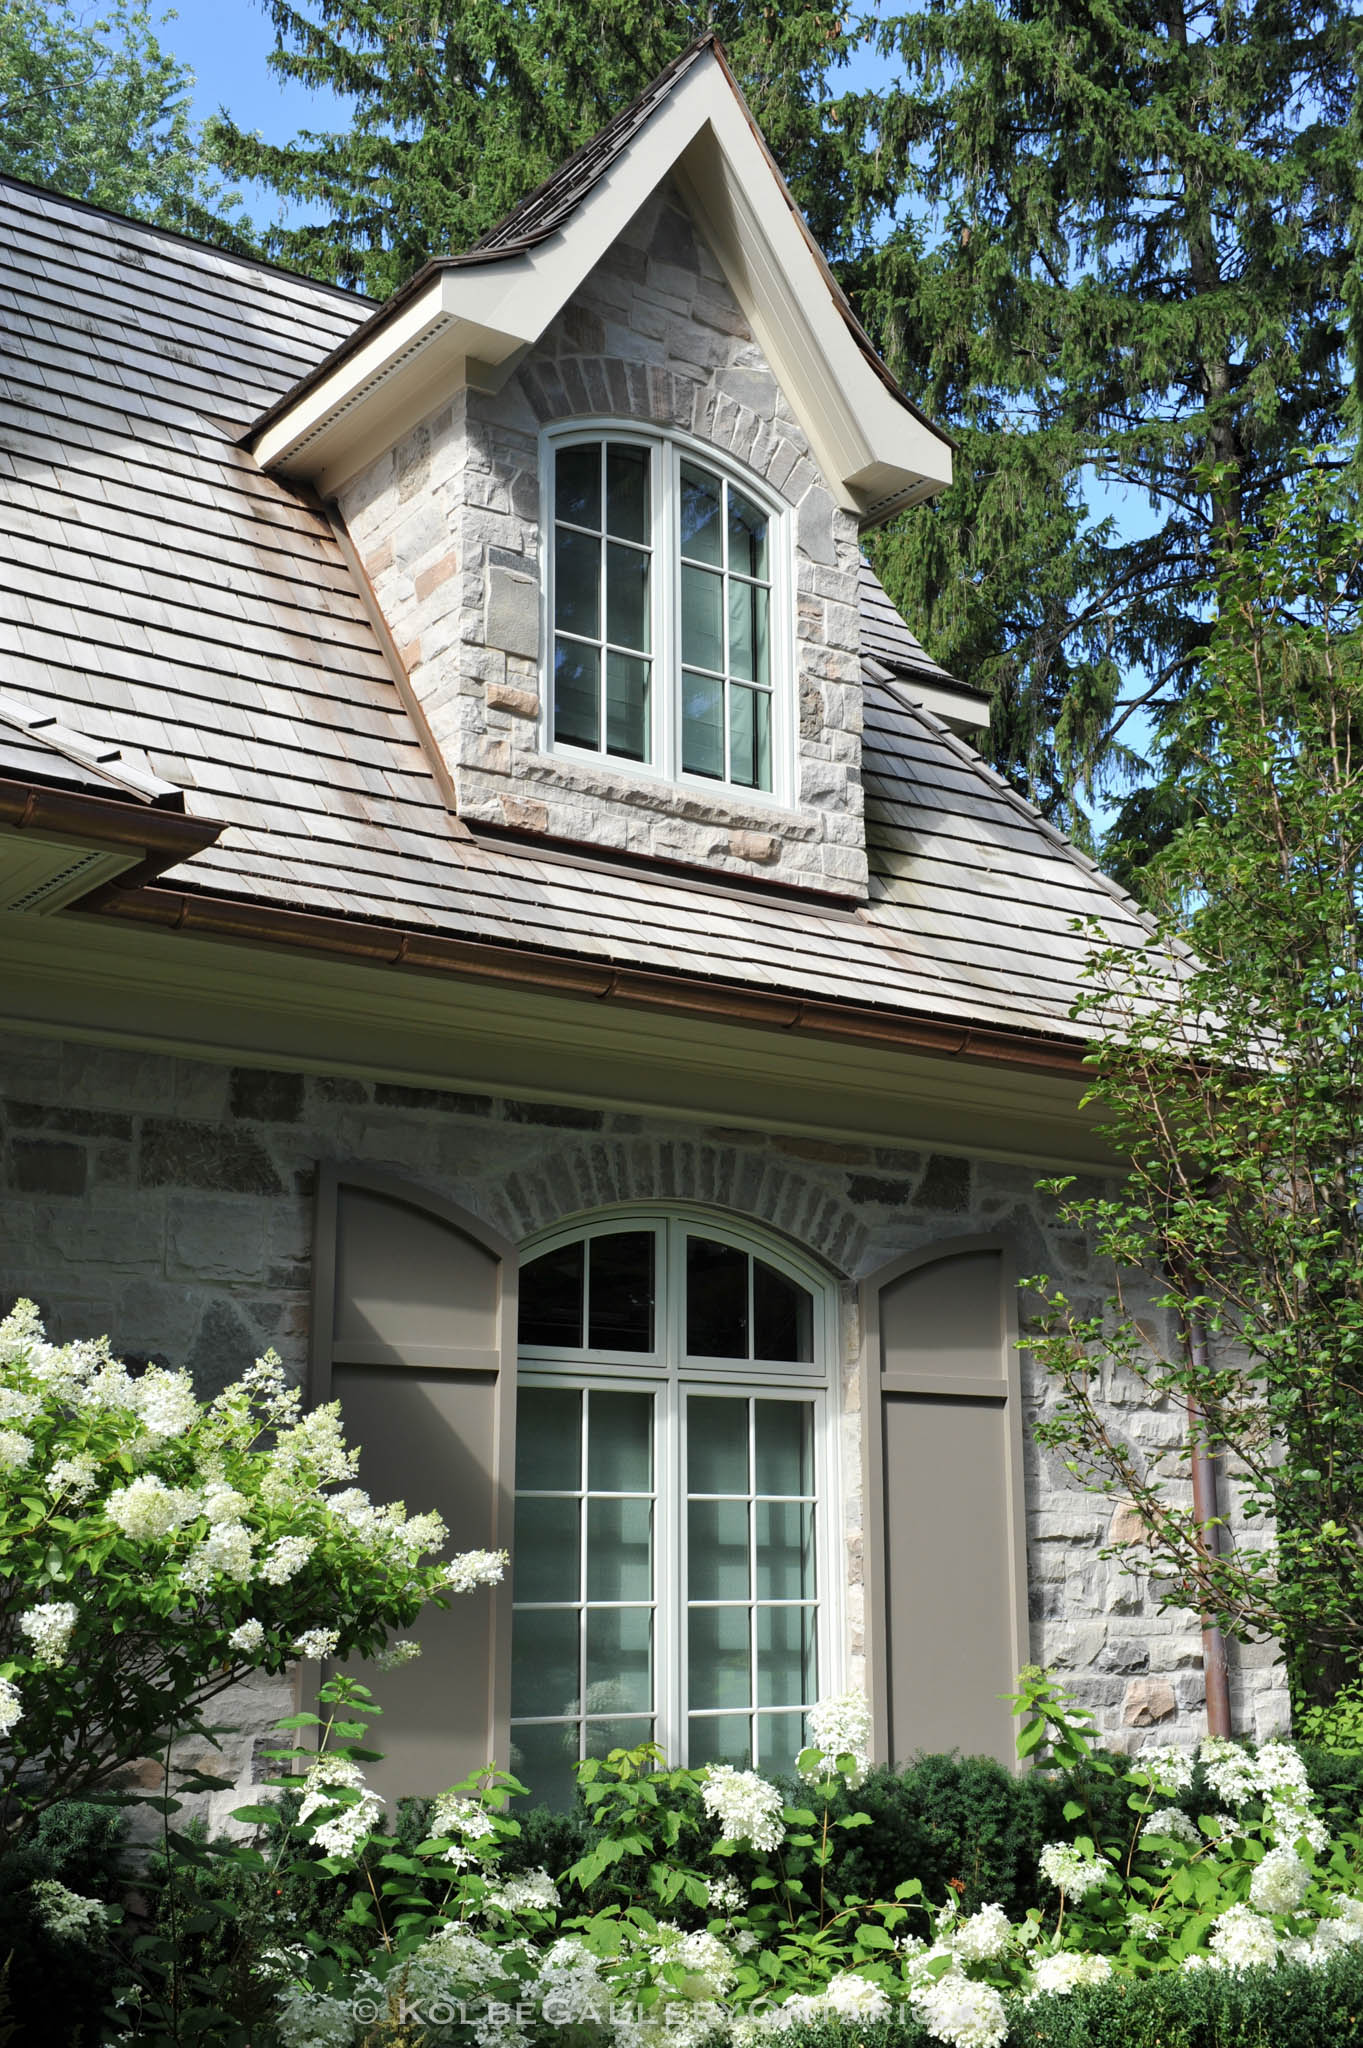 KolbeGalleryOntario.ca-windows-and-doors---20120727-060825